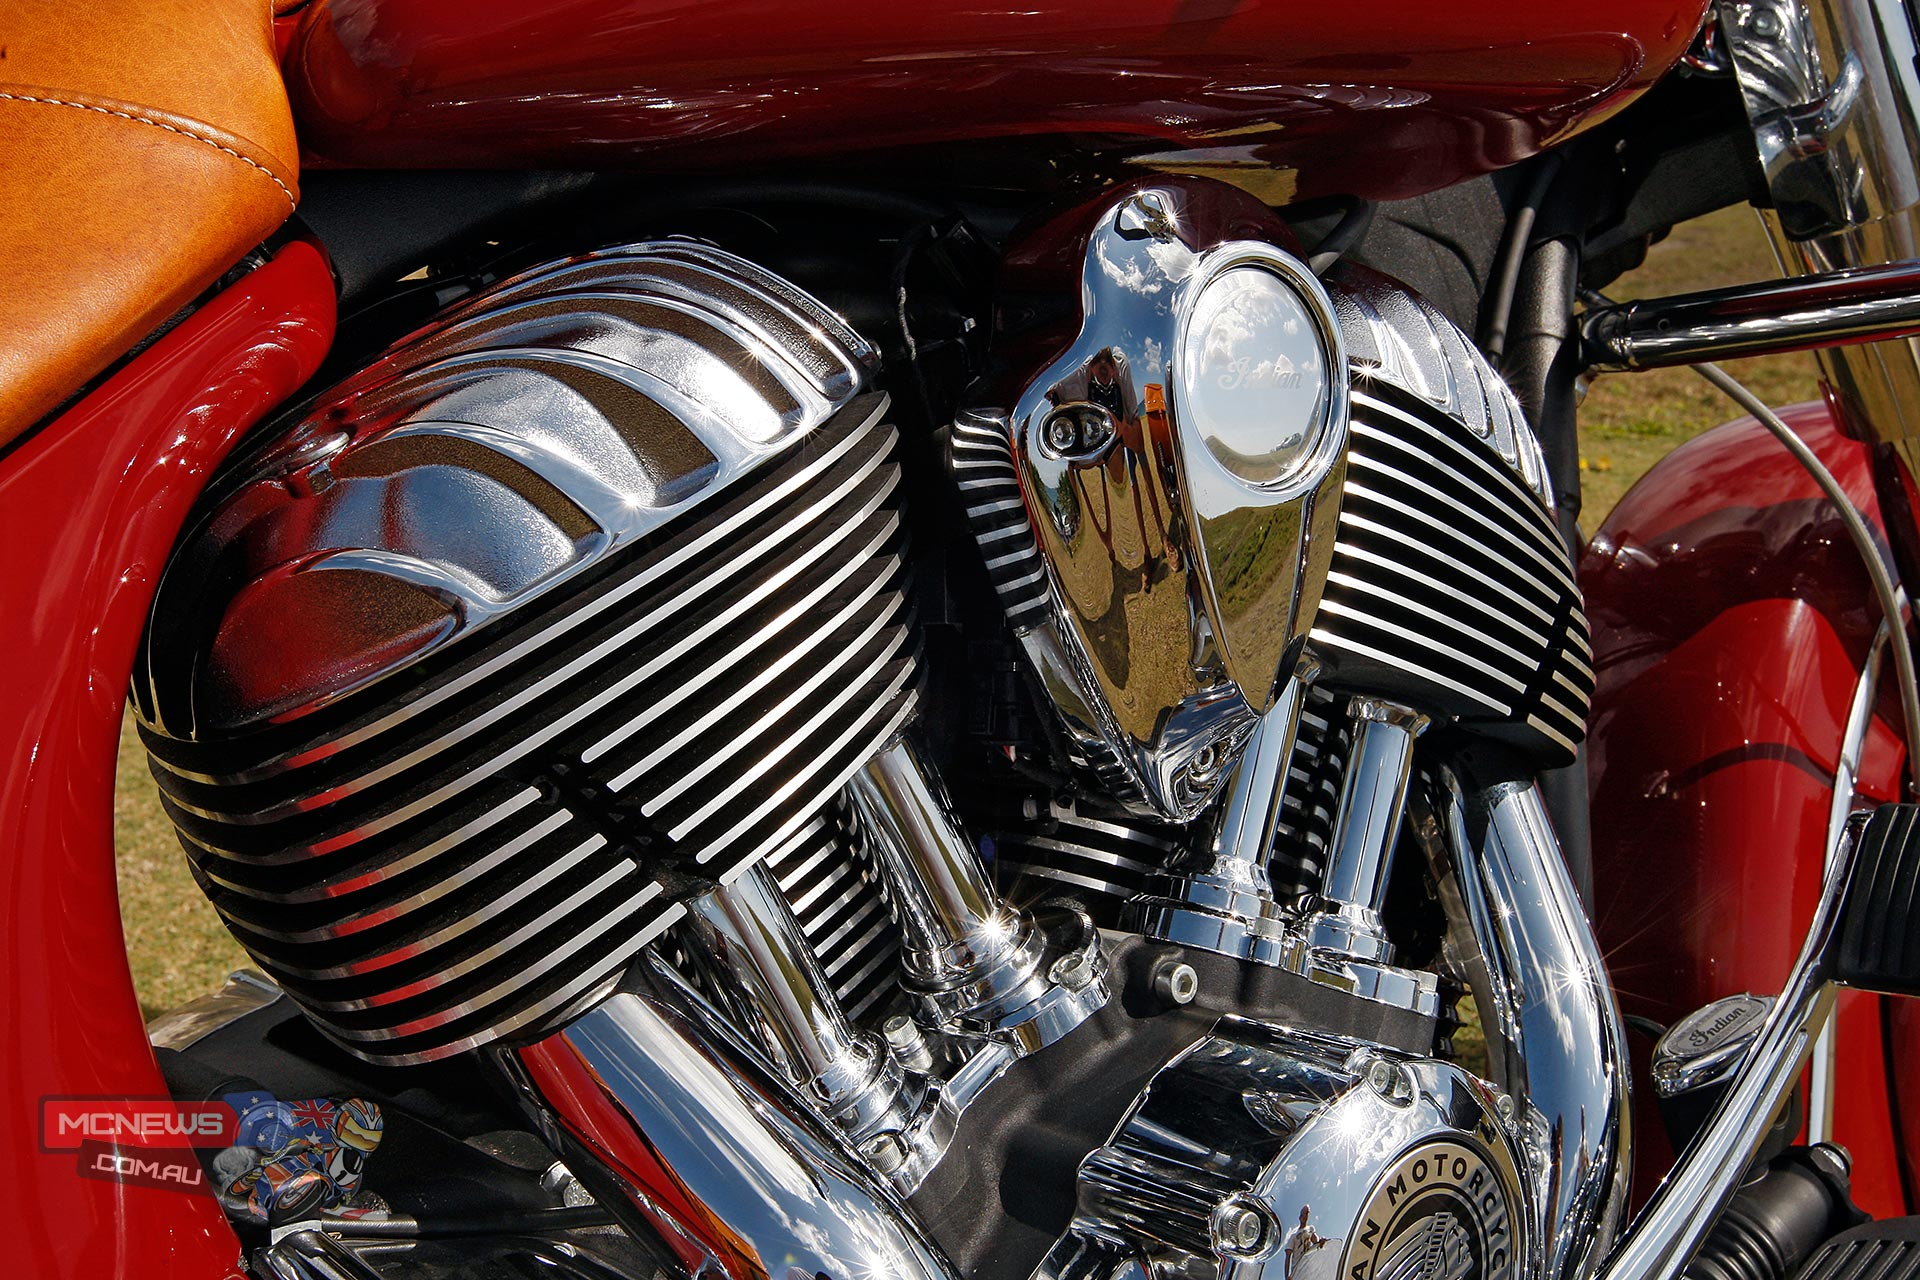 Indian Thunderstroke 111, 1811cc - narrow 49-degree vee